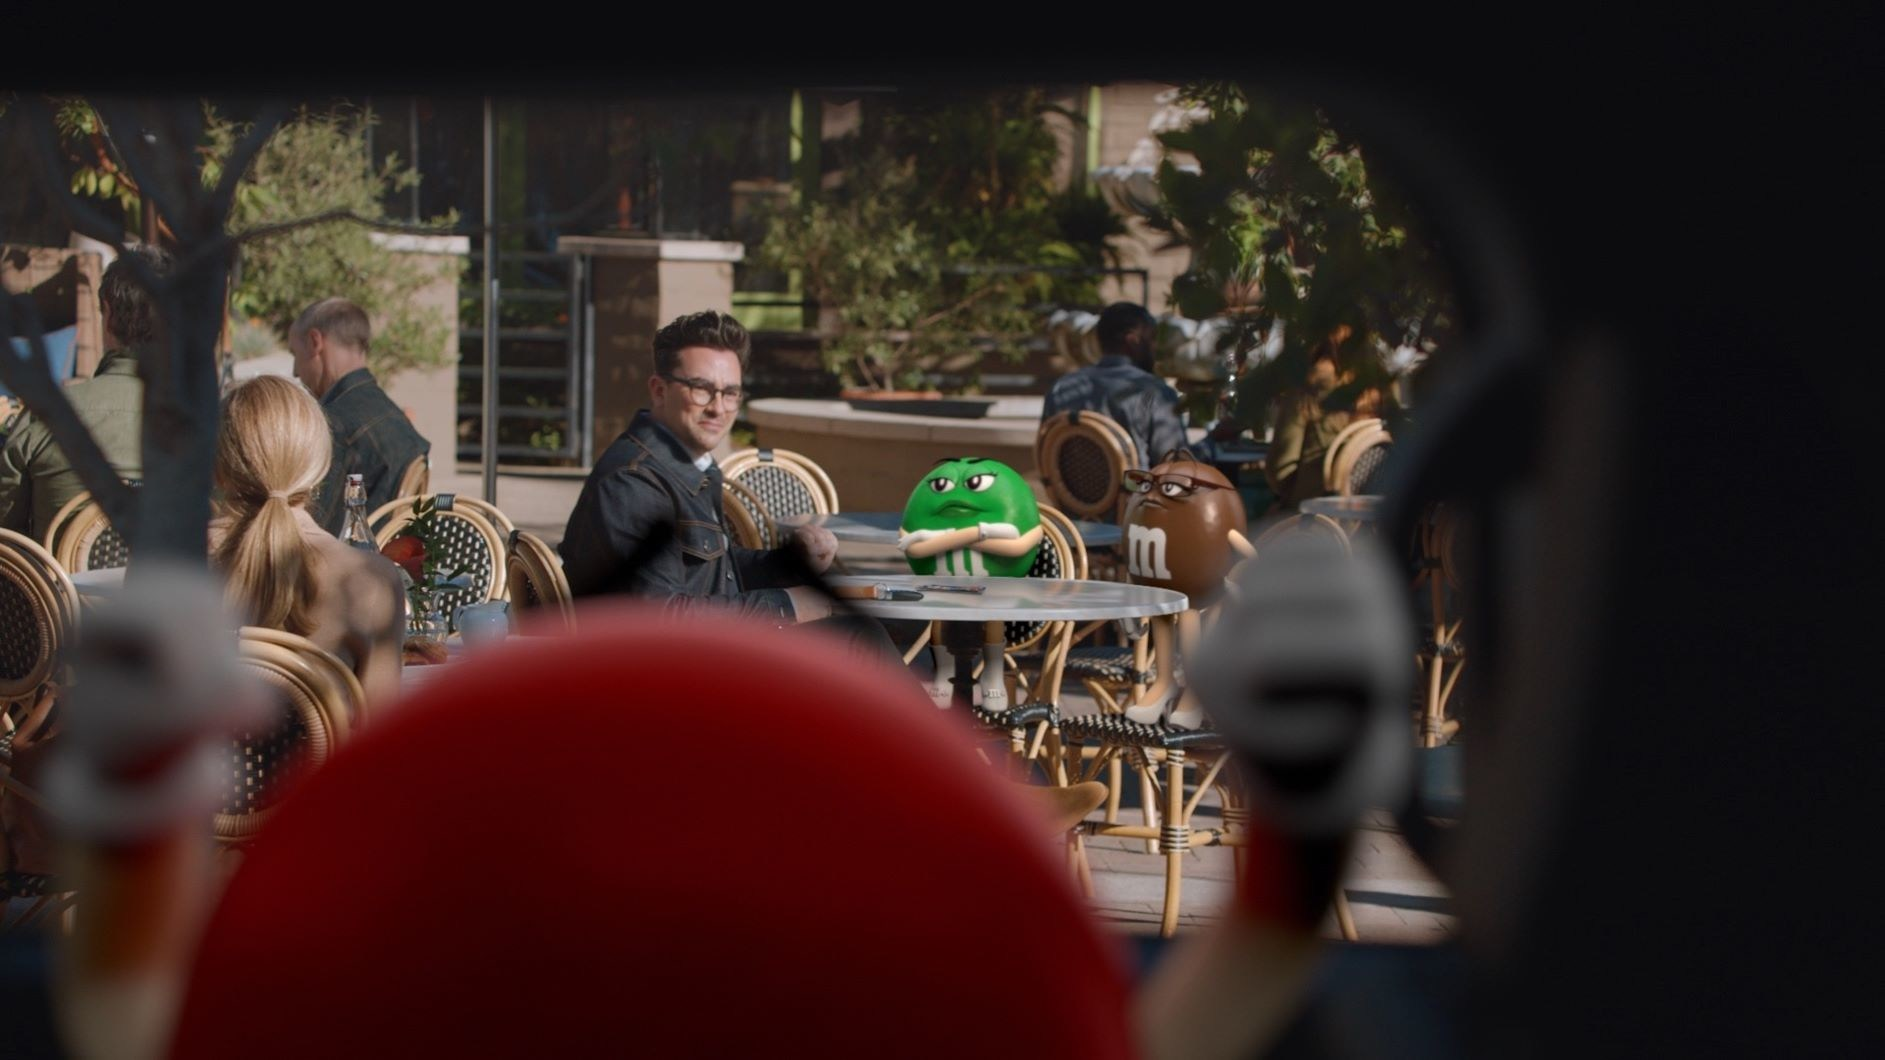 M&M's seeks to make people smile in new Super Bowl ad featuring Dan Levy via BBDO New York